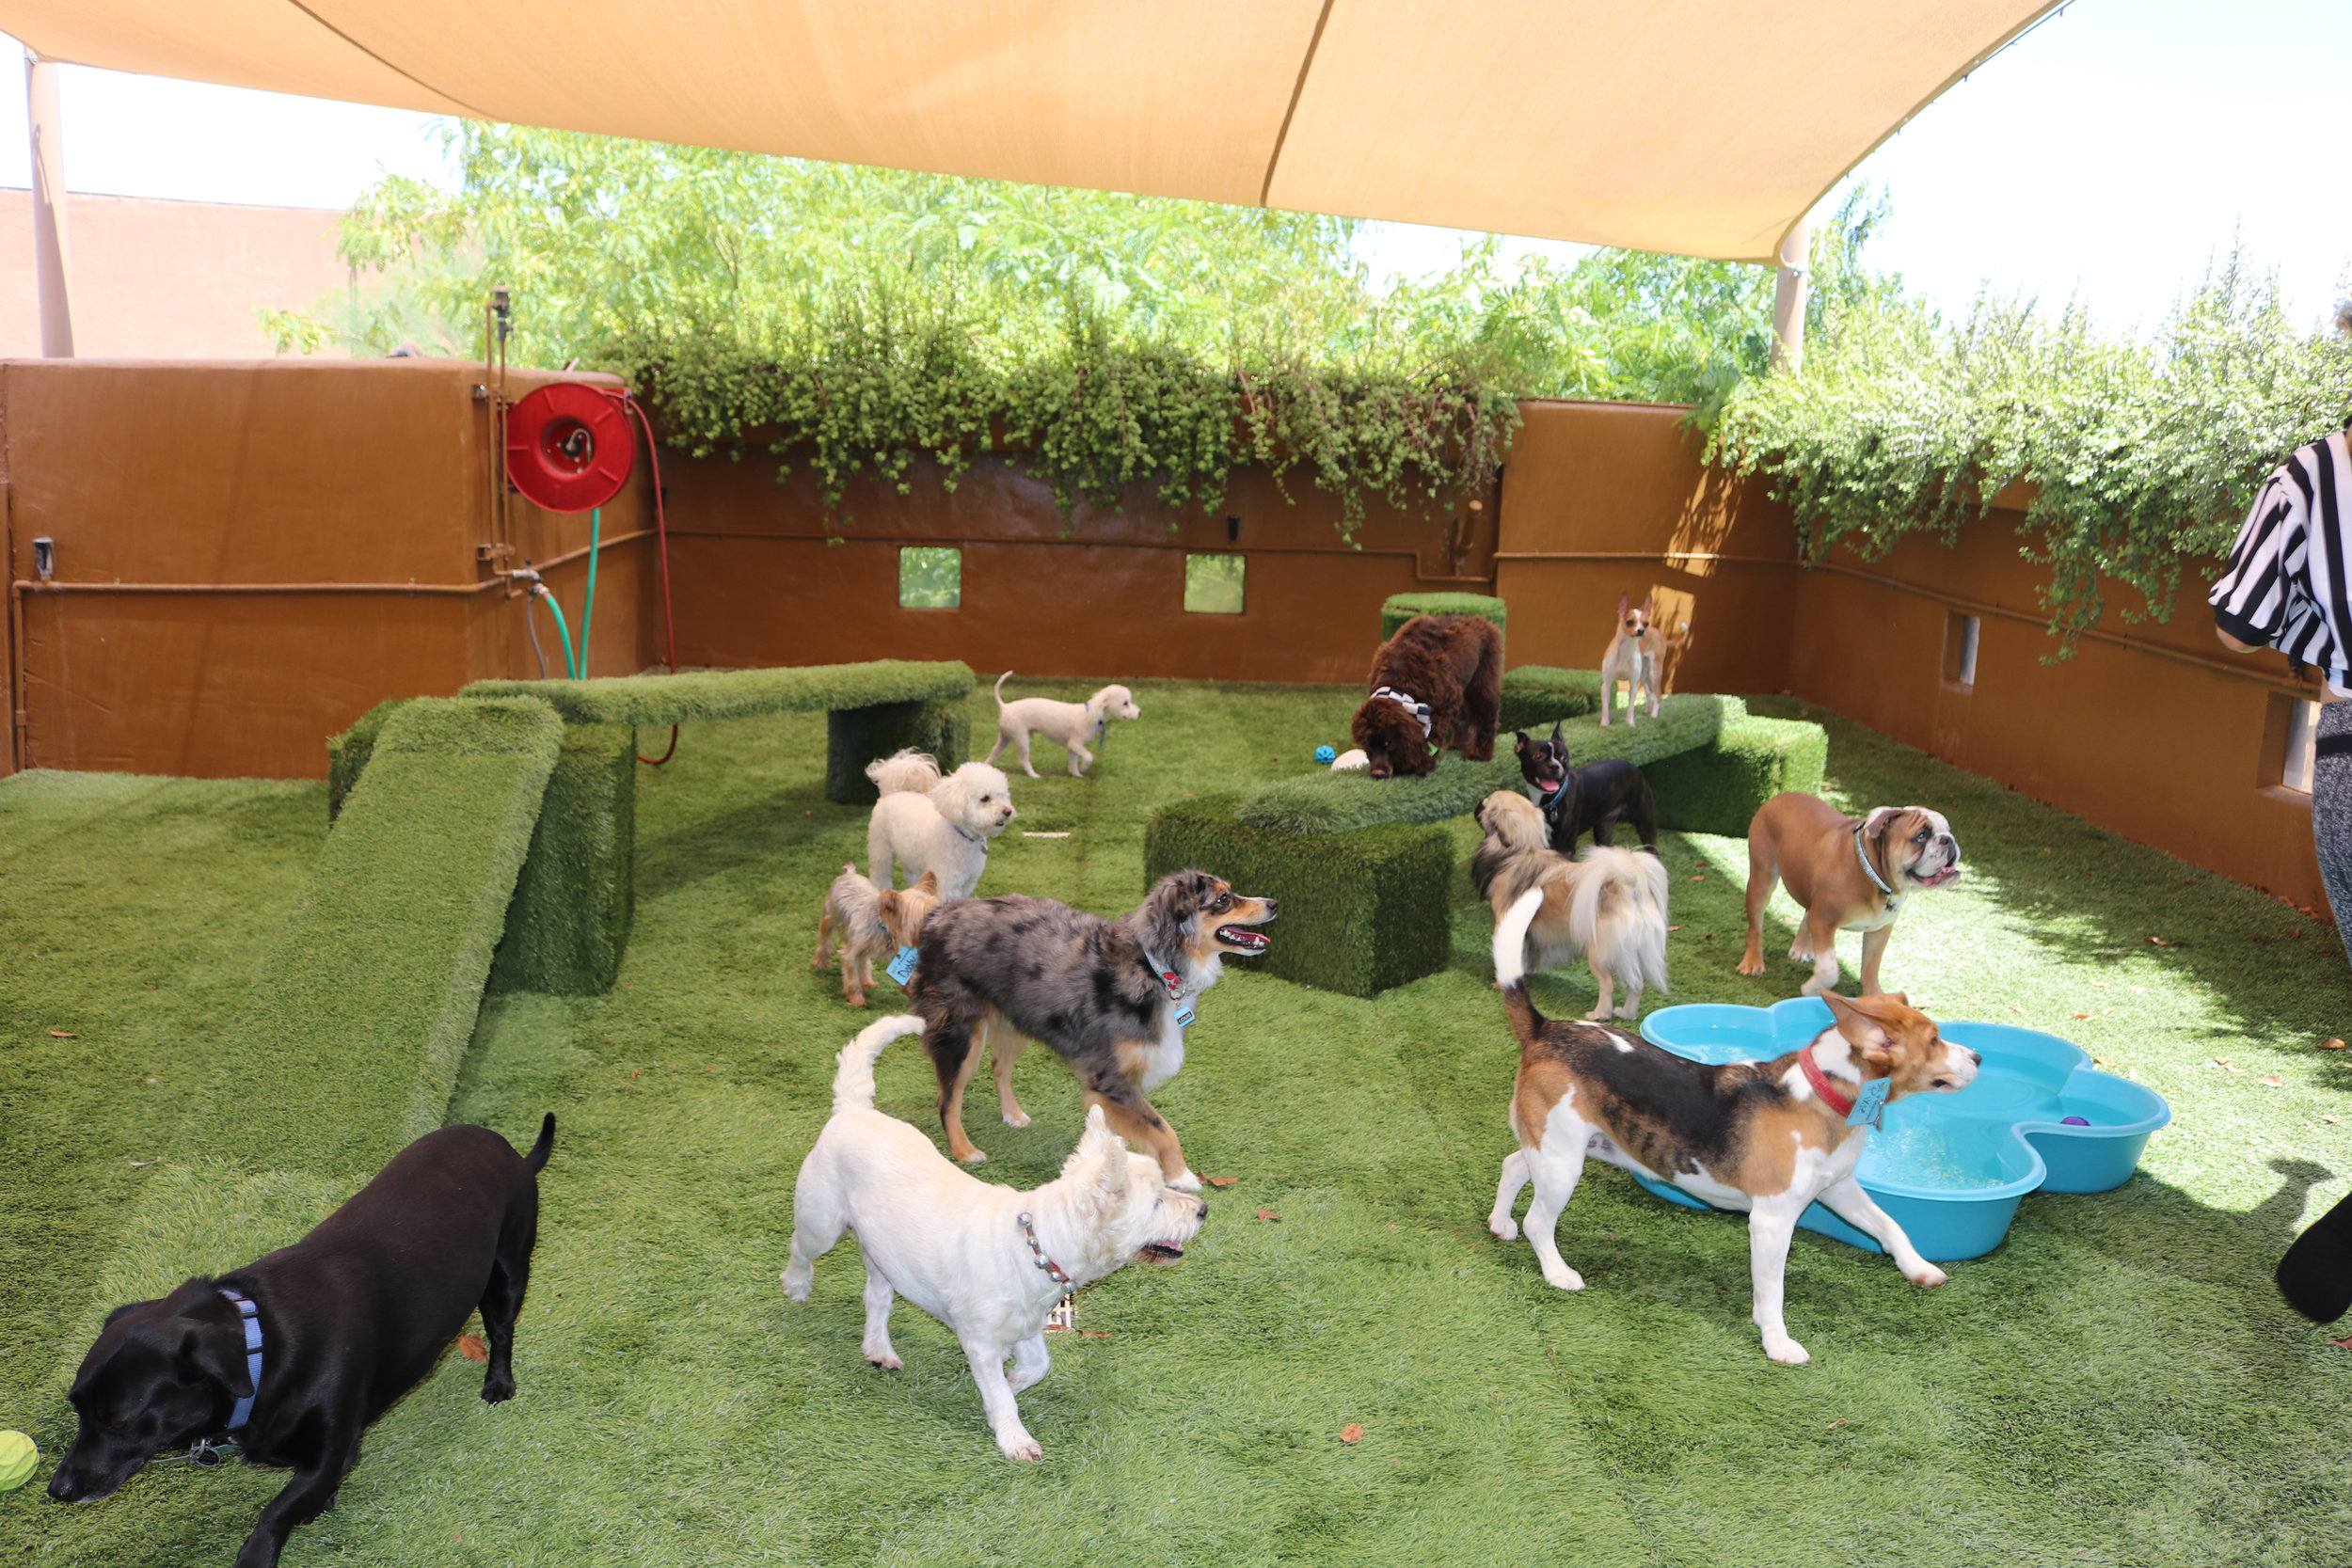 small-dogs-daycare-dog-boarding-pool-cageless7.jpg